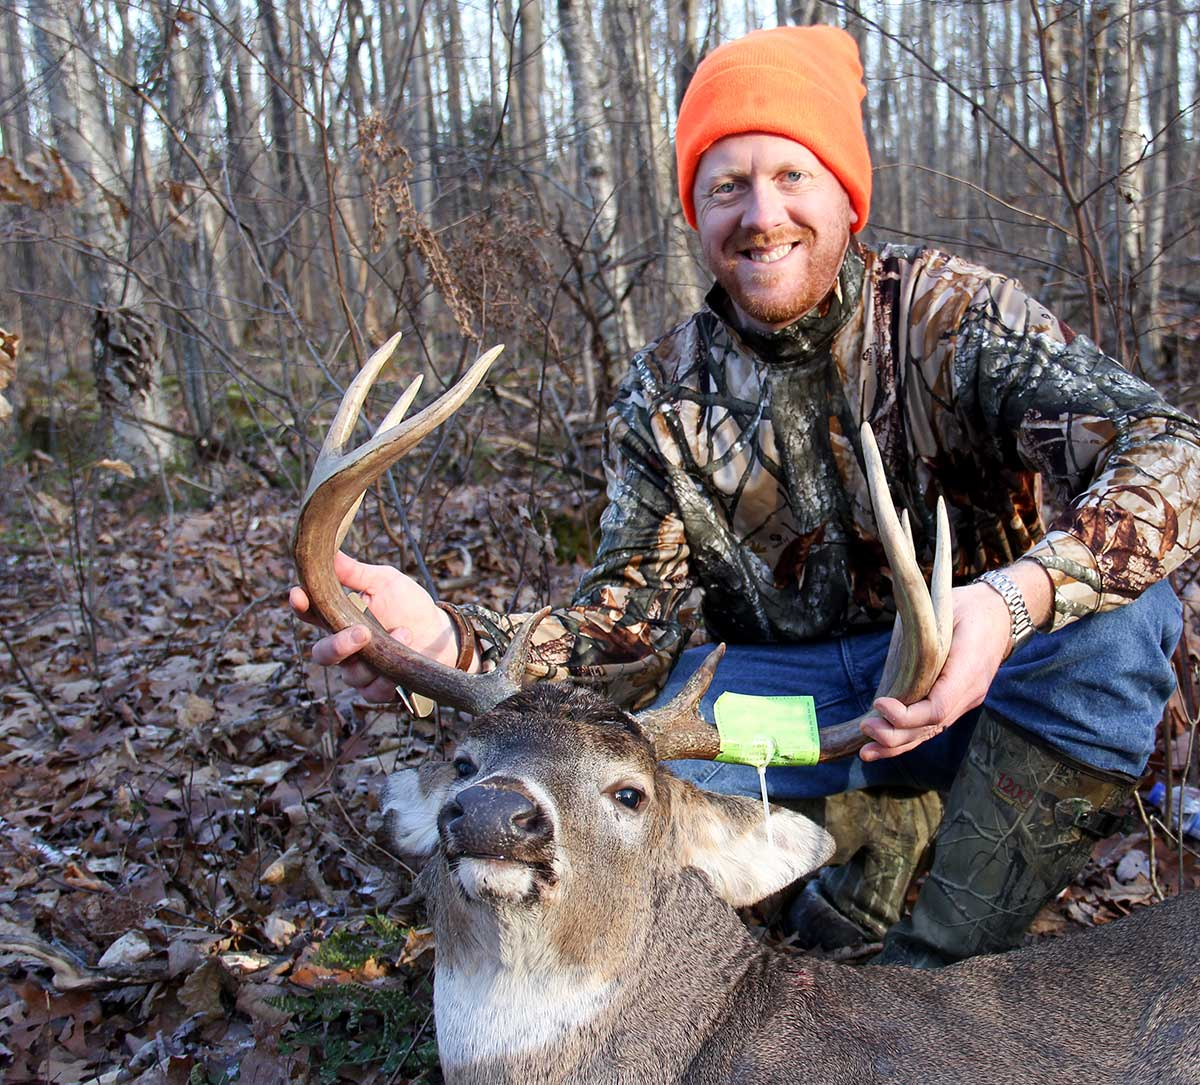 Bill Rider with the deer